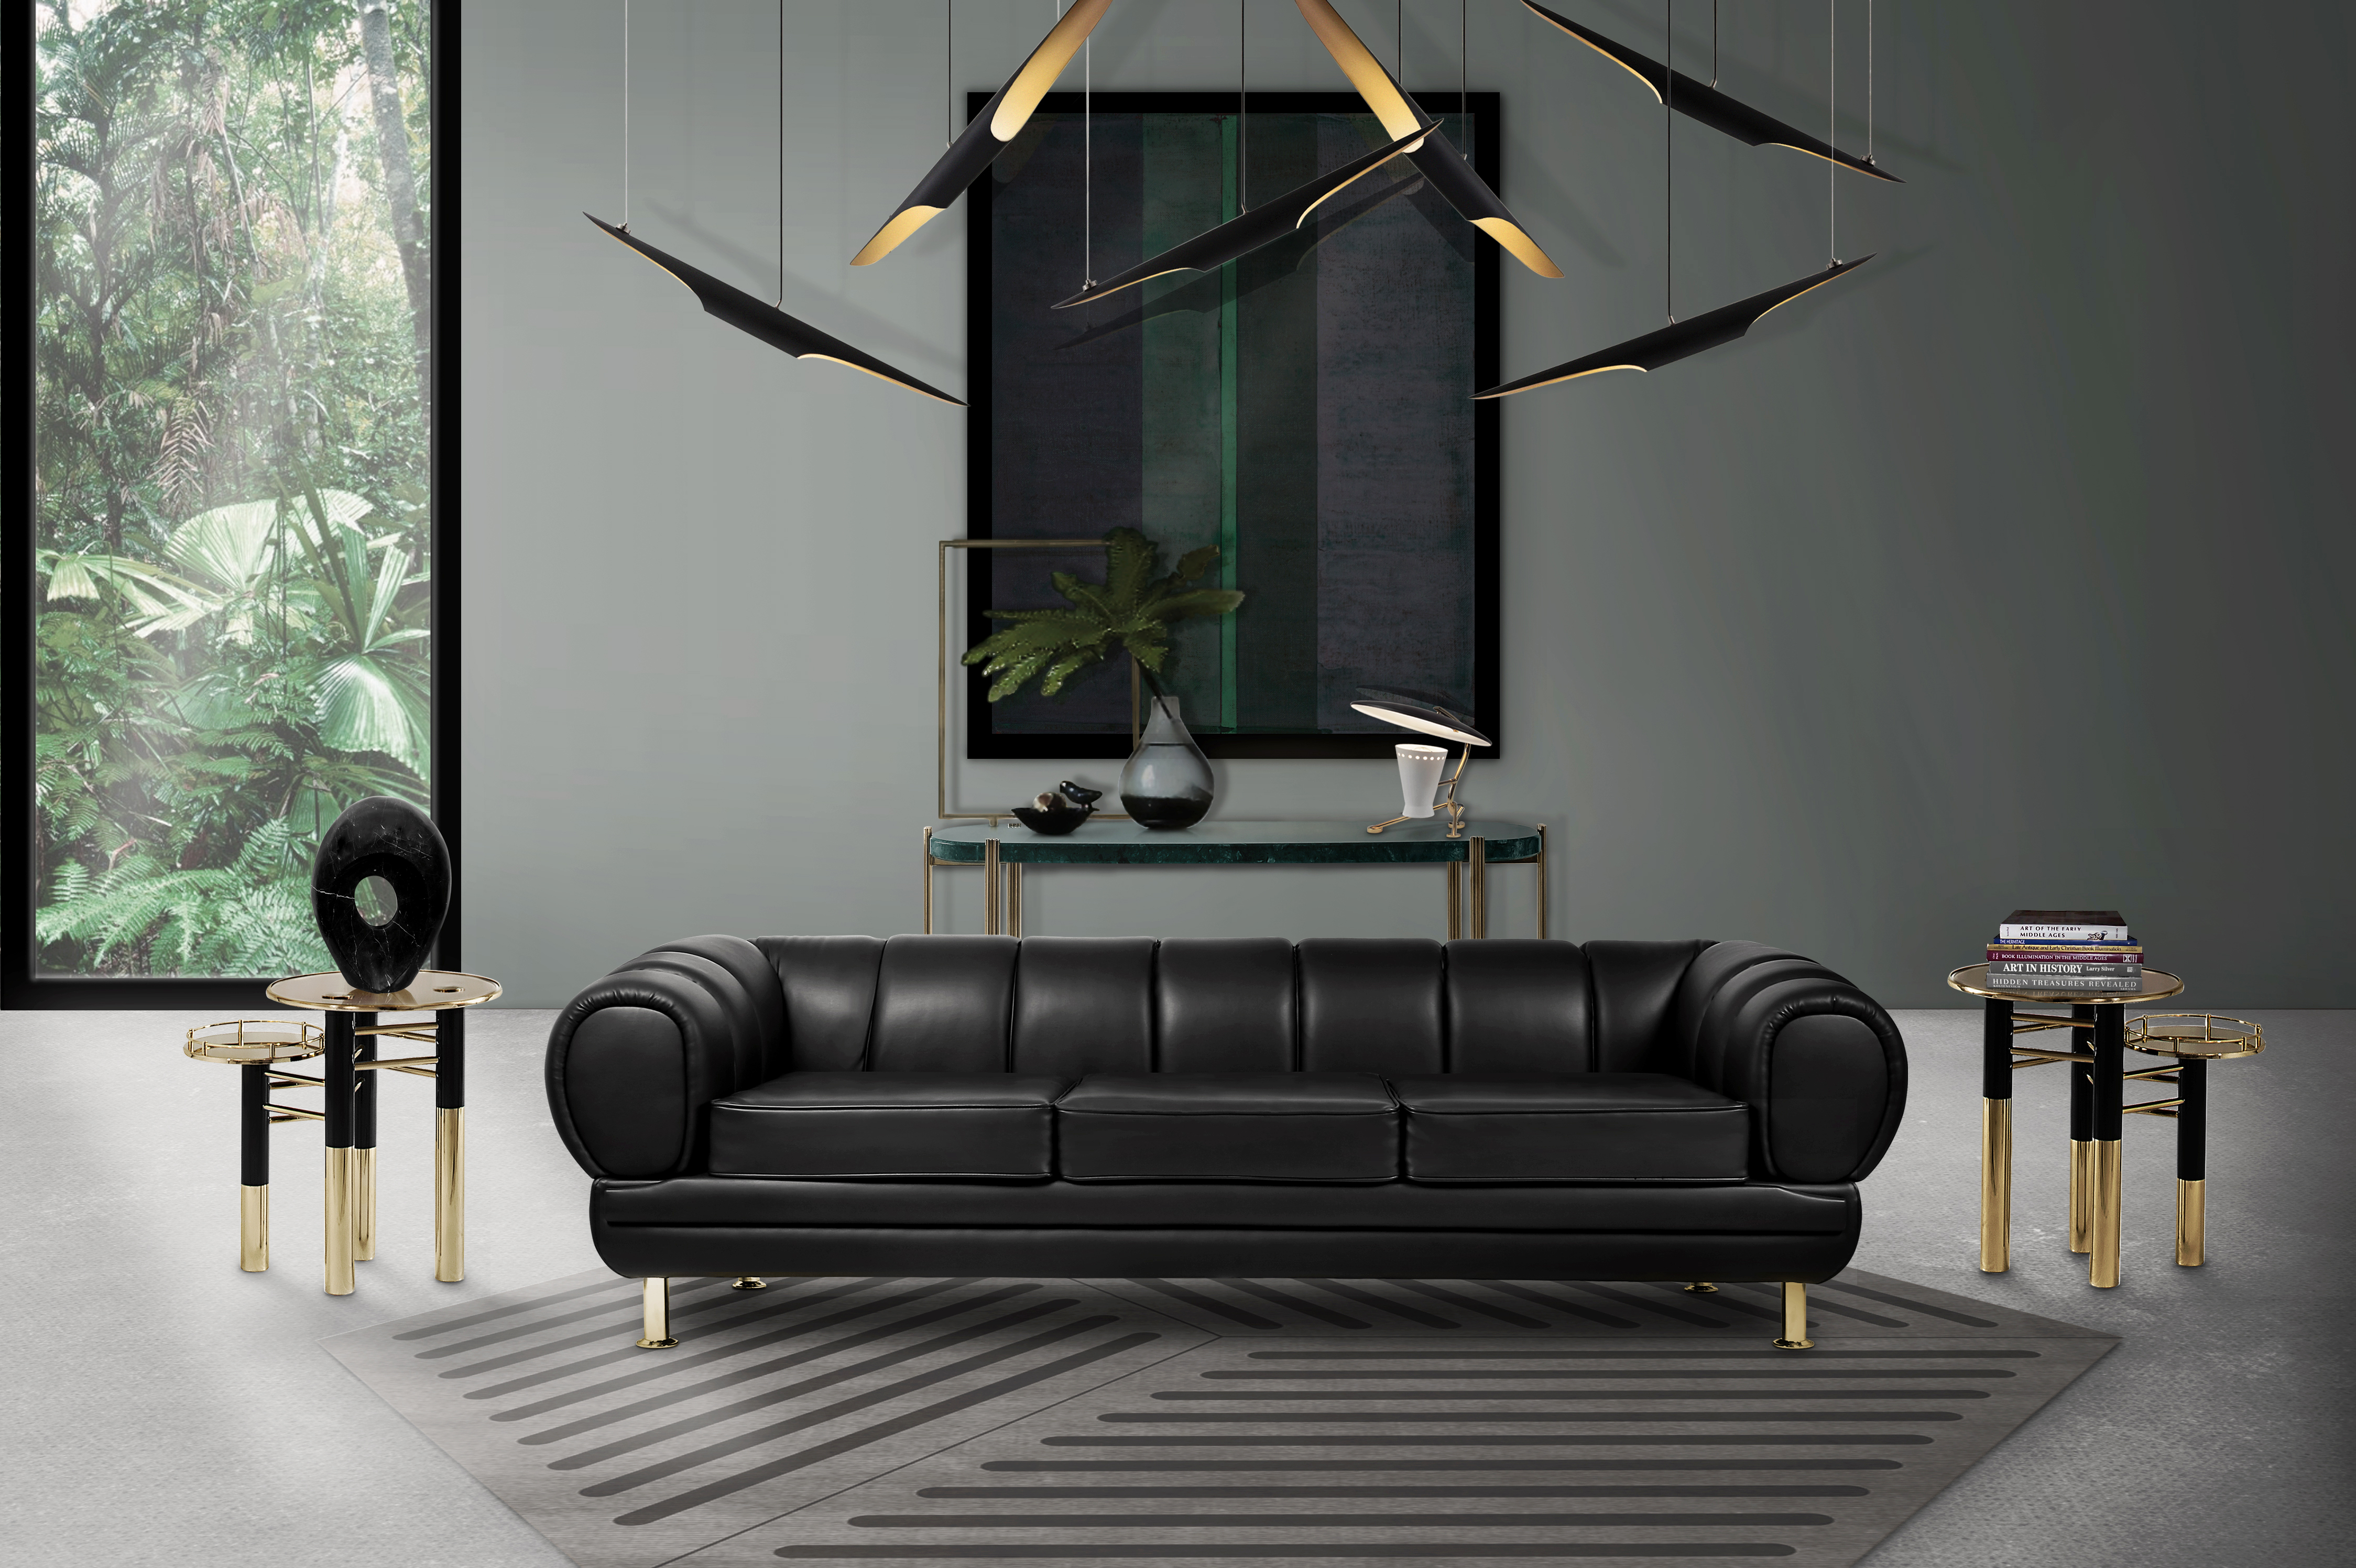 A Selection of 25 Modern Sofas and Armchairs You Must See modern sofas and armchairs A Selection of 25 Modern Sofas and Armchairs You Must See A Selection of 25 Modern Sofas You Must See 12